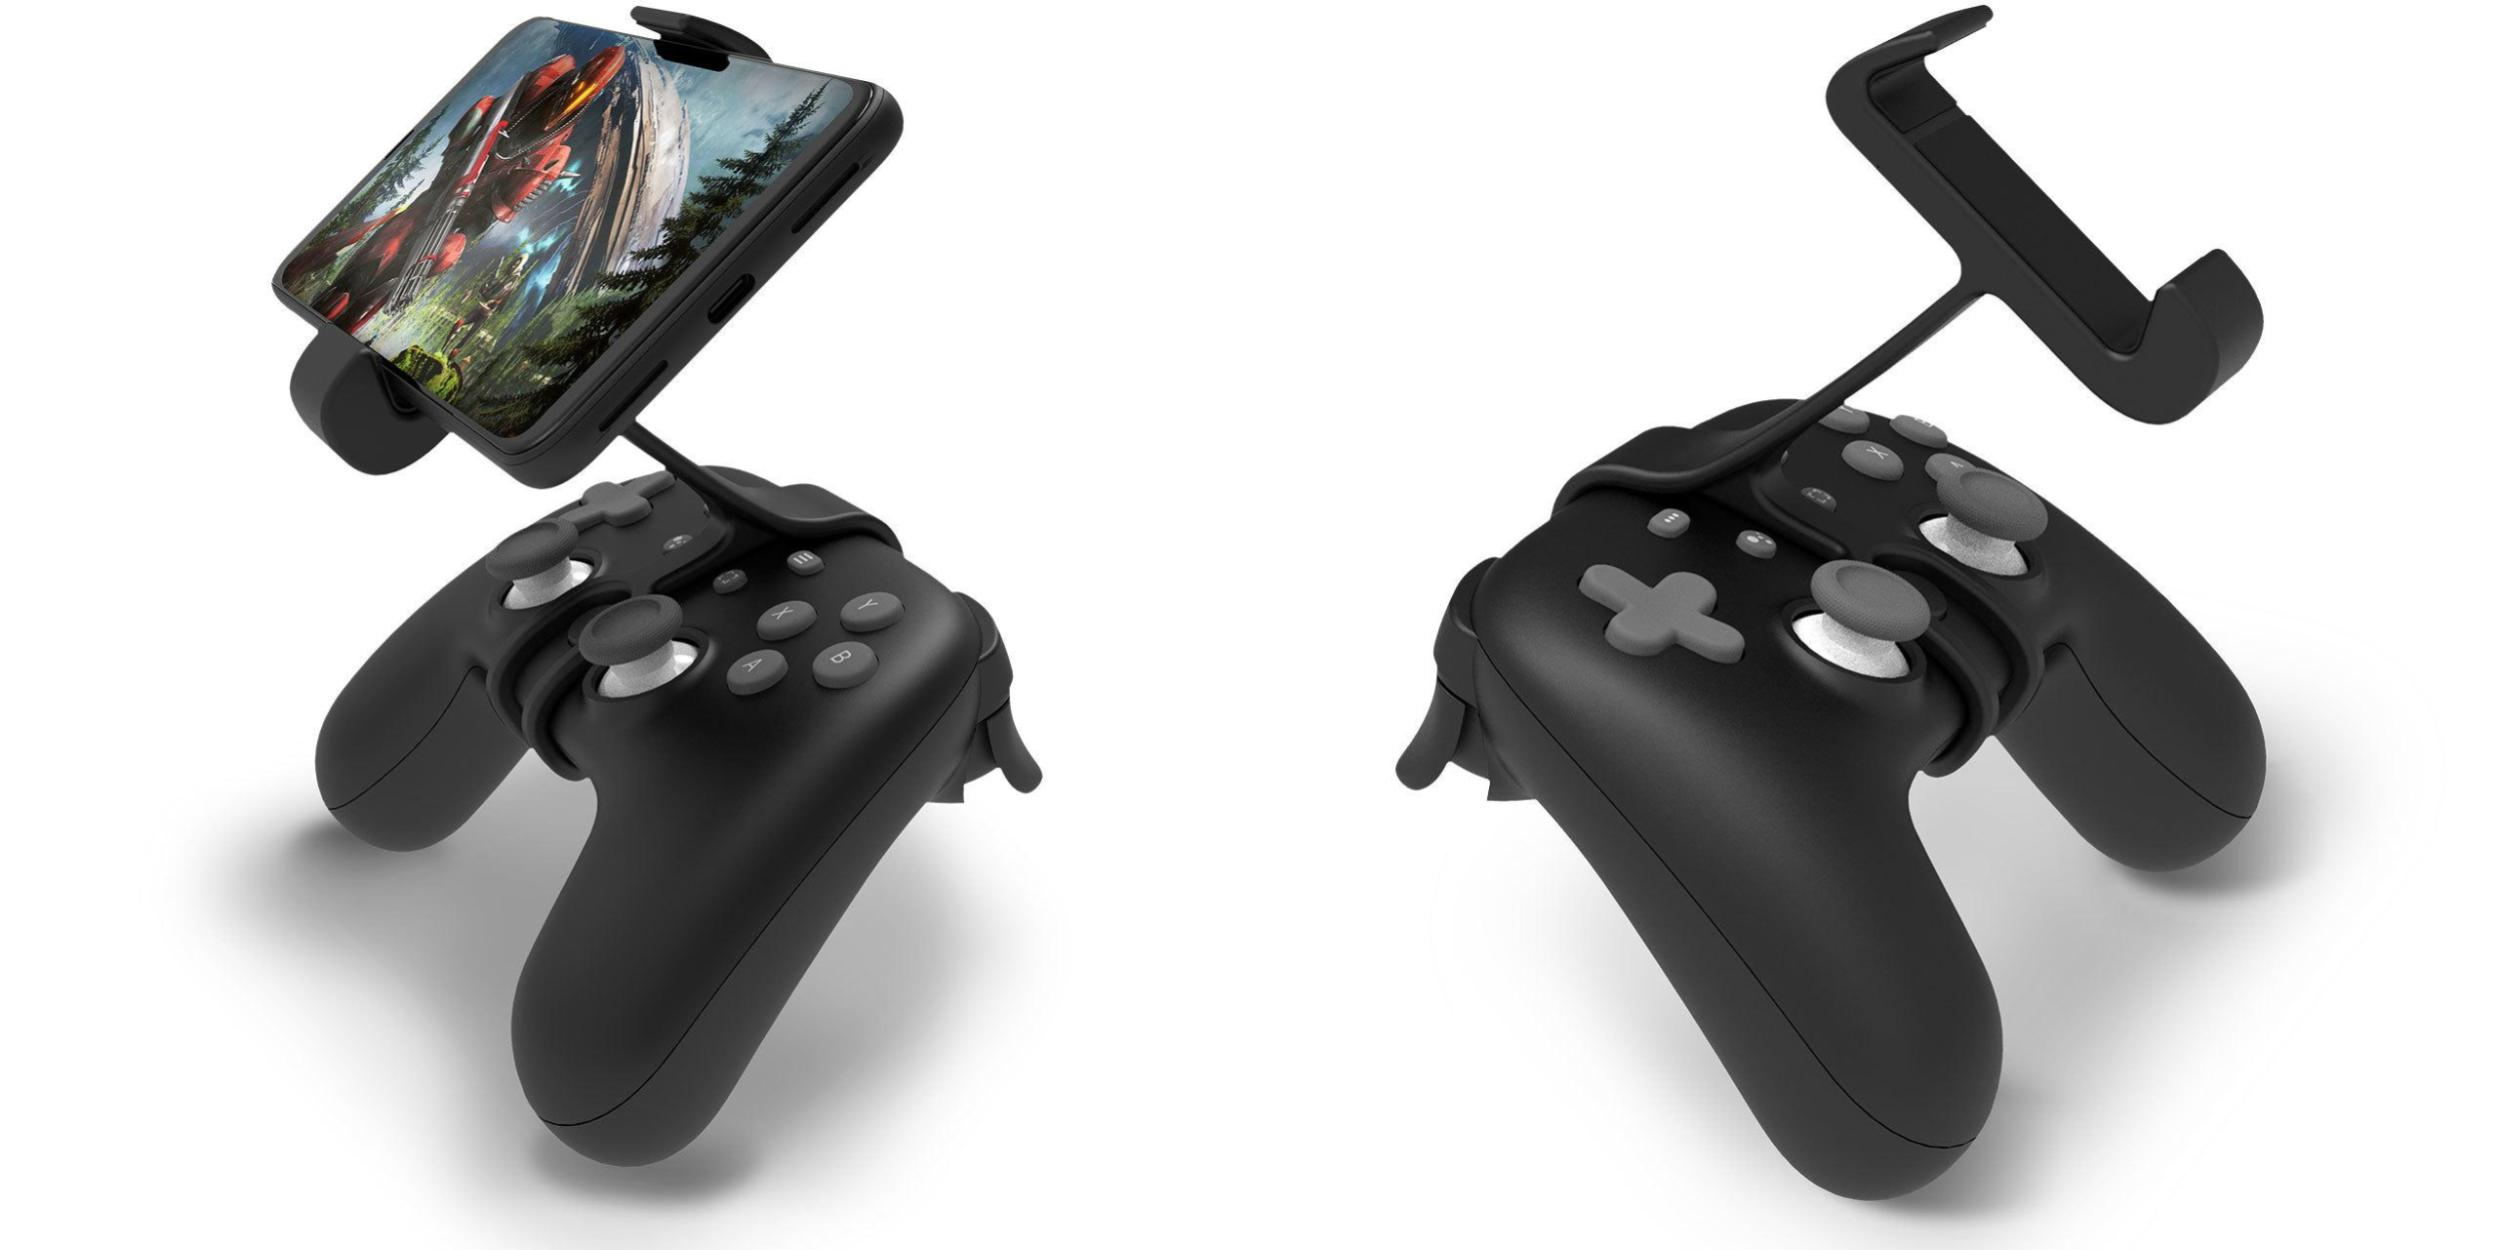 Stadia Controller 'Claw' coming 'mid-December,' according to manufacturer